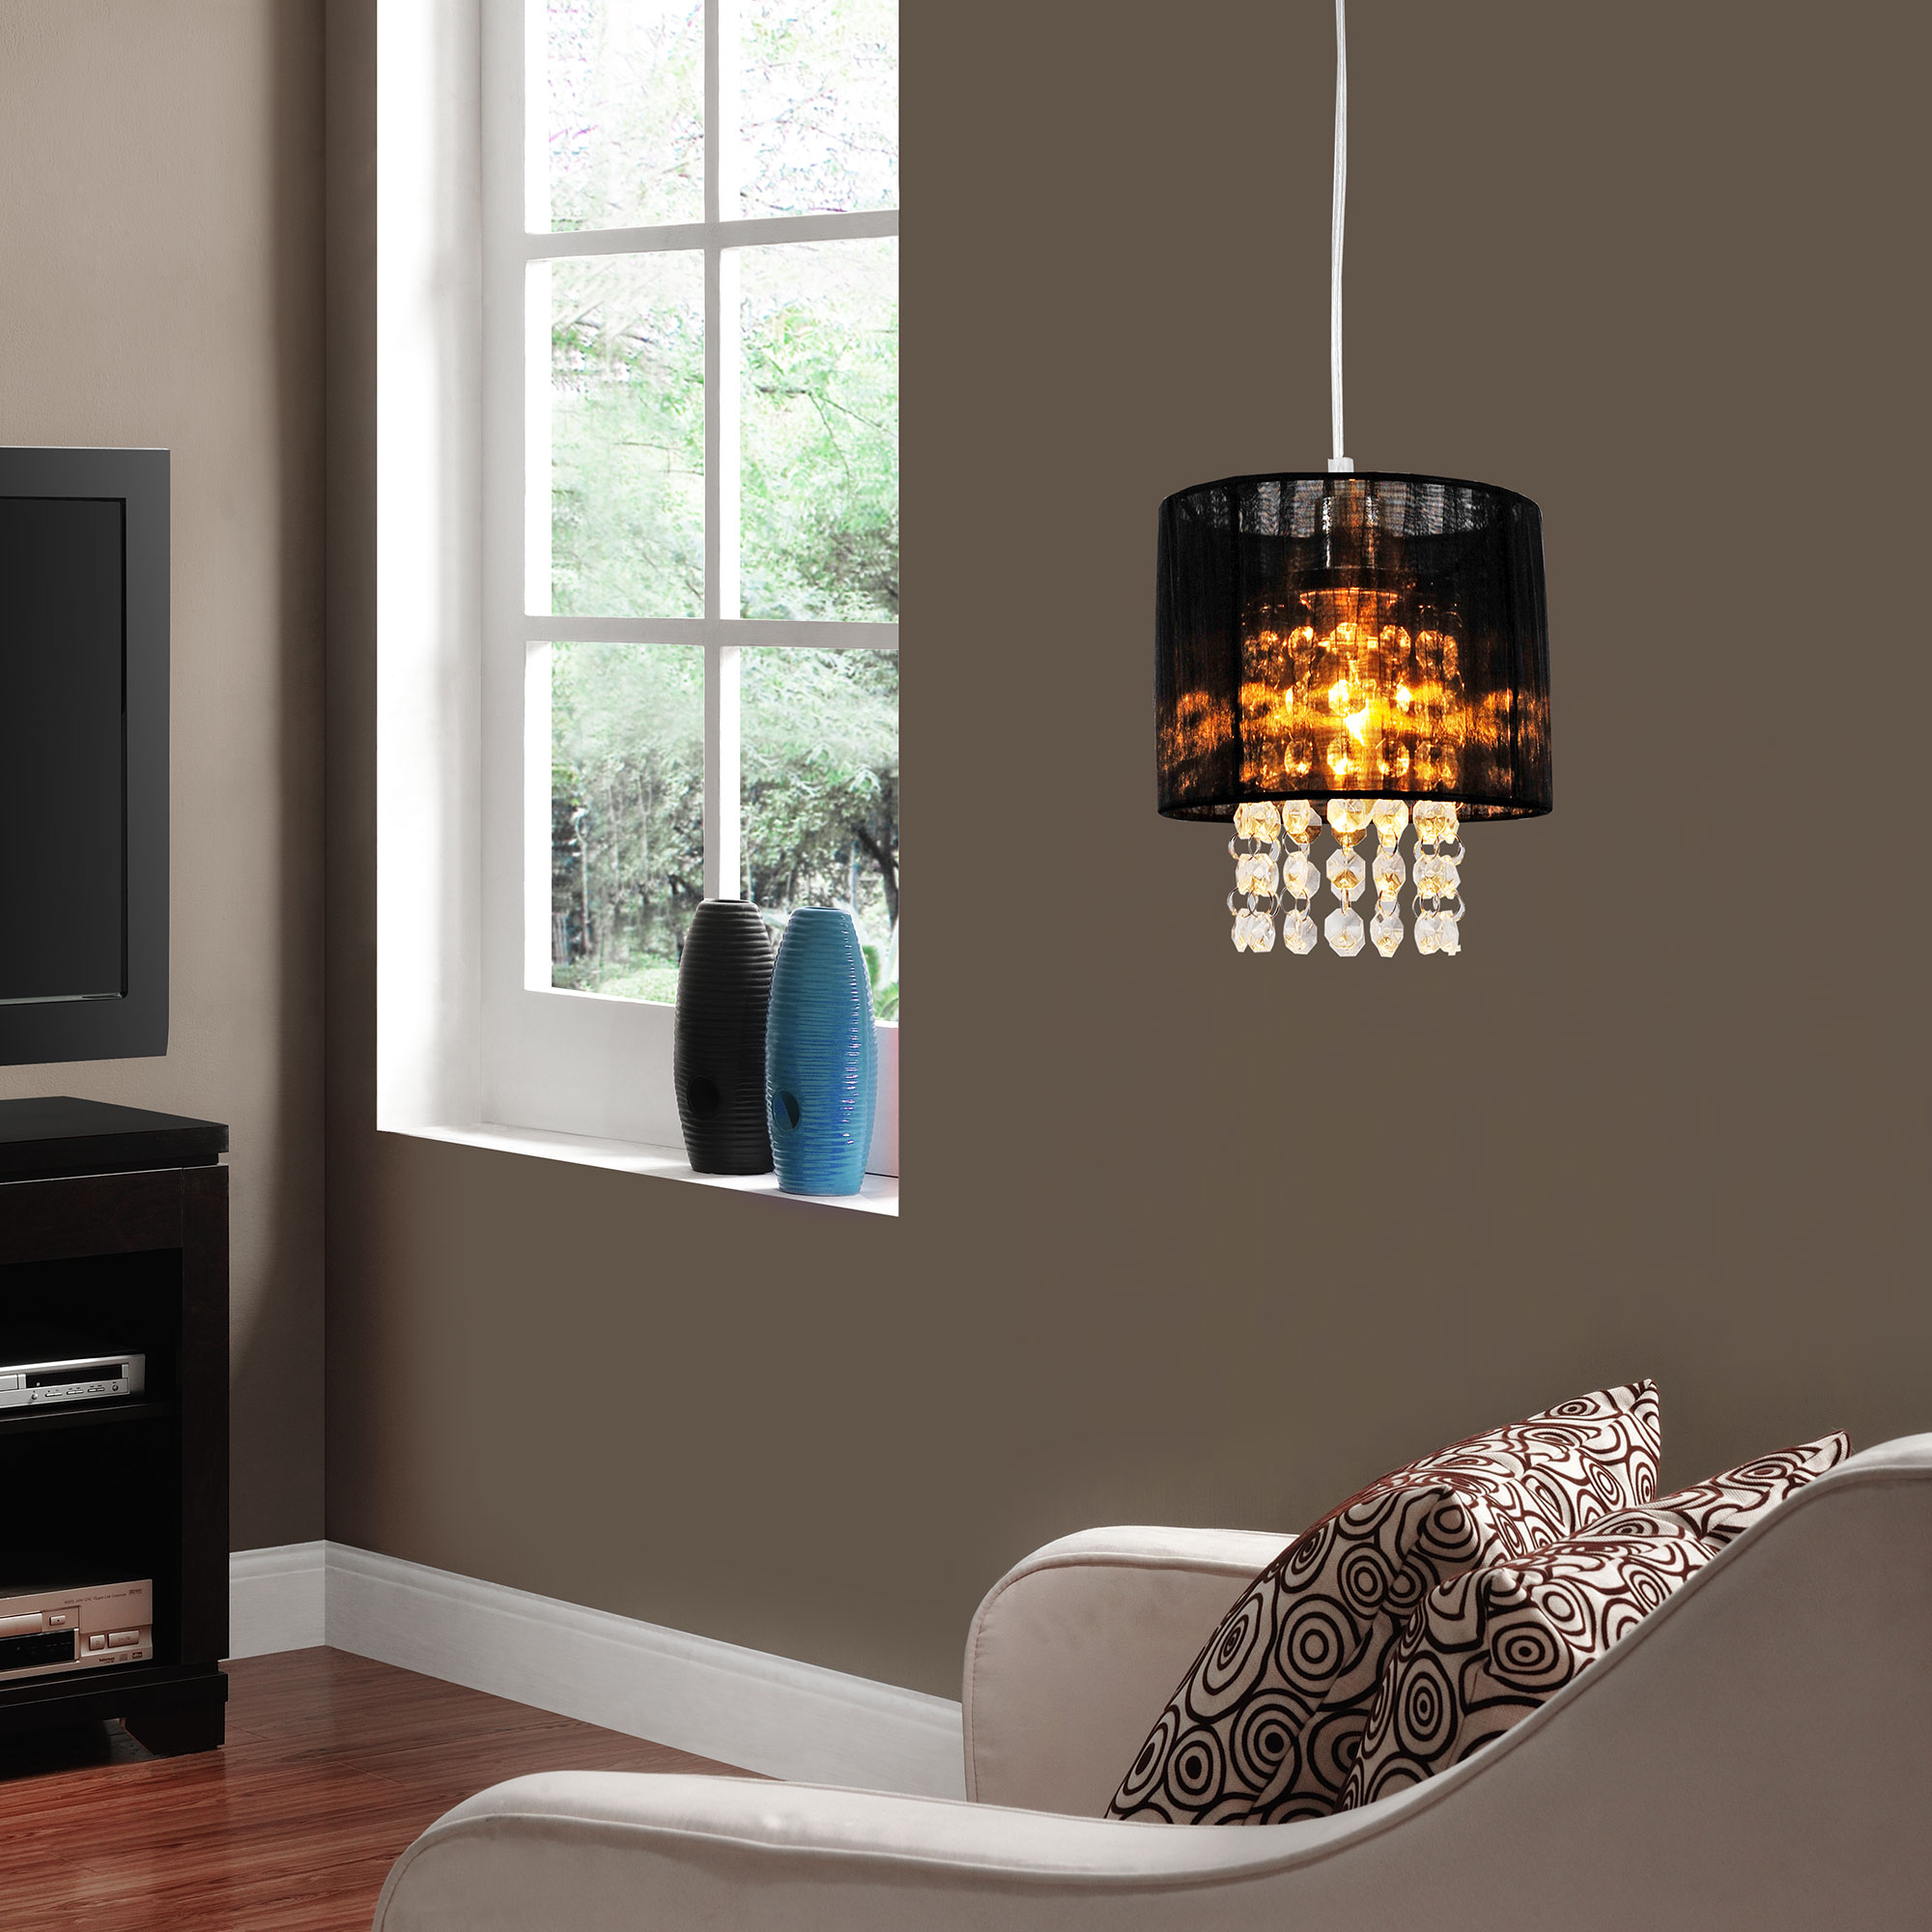 kristall h ngeleuchte 40 cm kugelleuchte deckenlampe zimmerlampe ebay. Black Bedroom Furniture Sets. Home Design Ideas